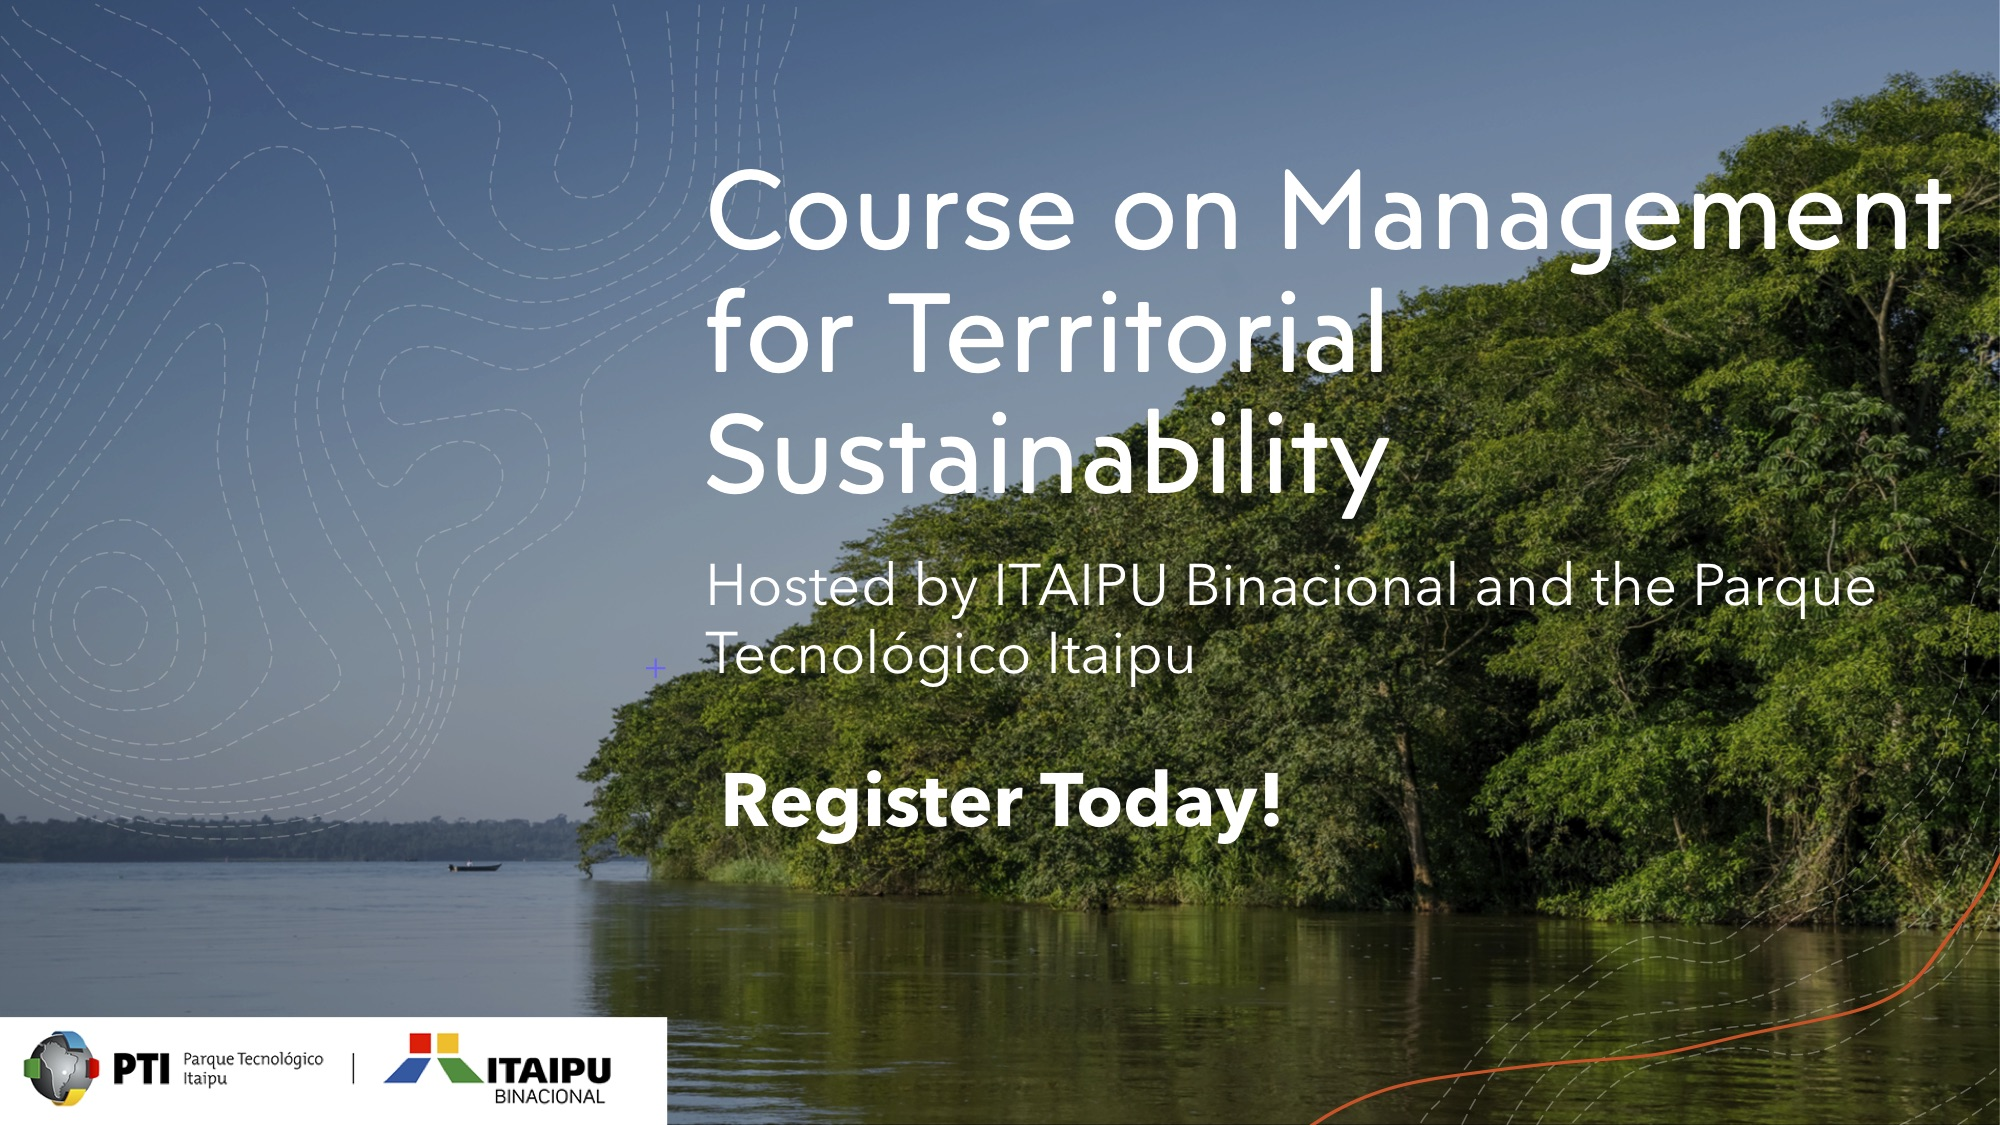 Course on Management for Territorial Sustainability